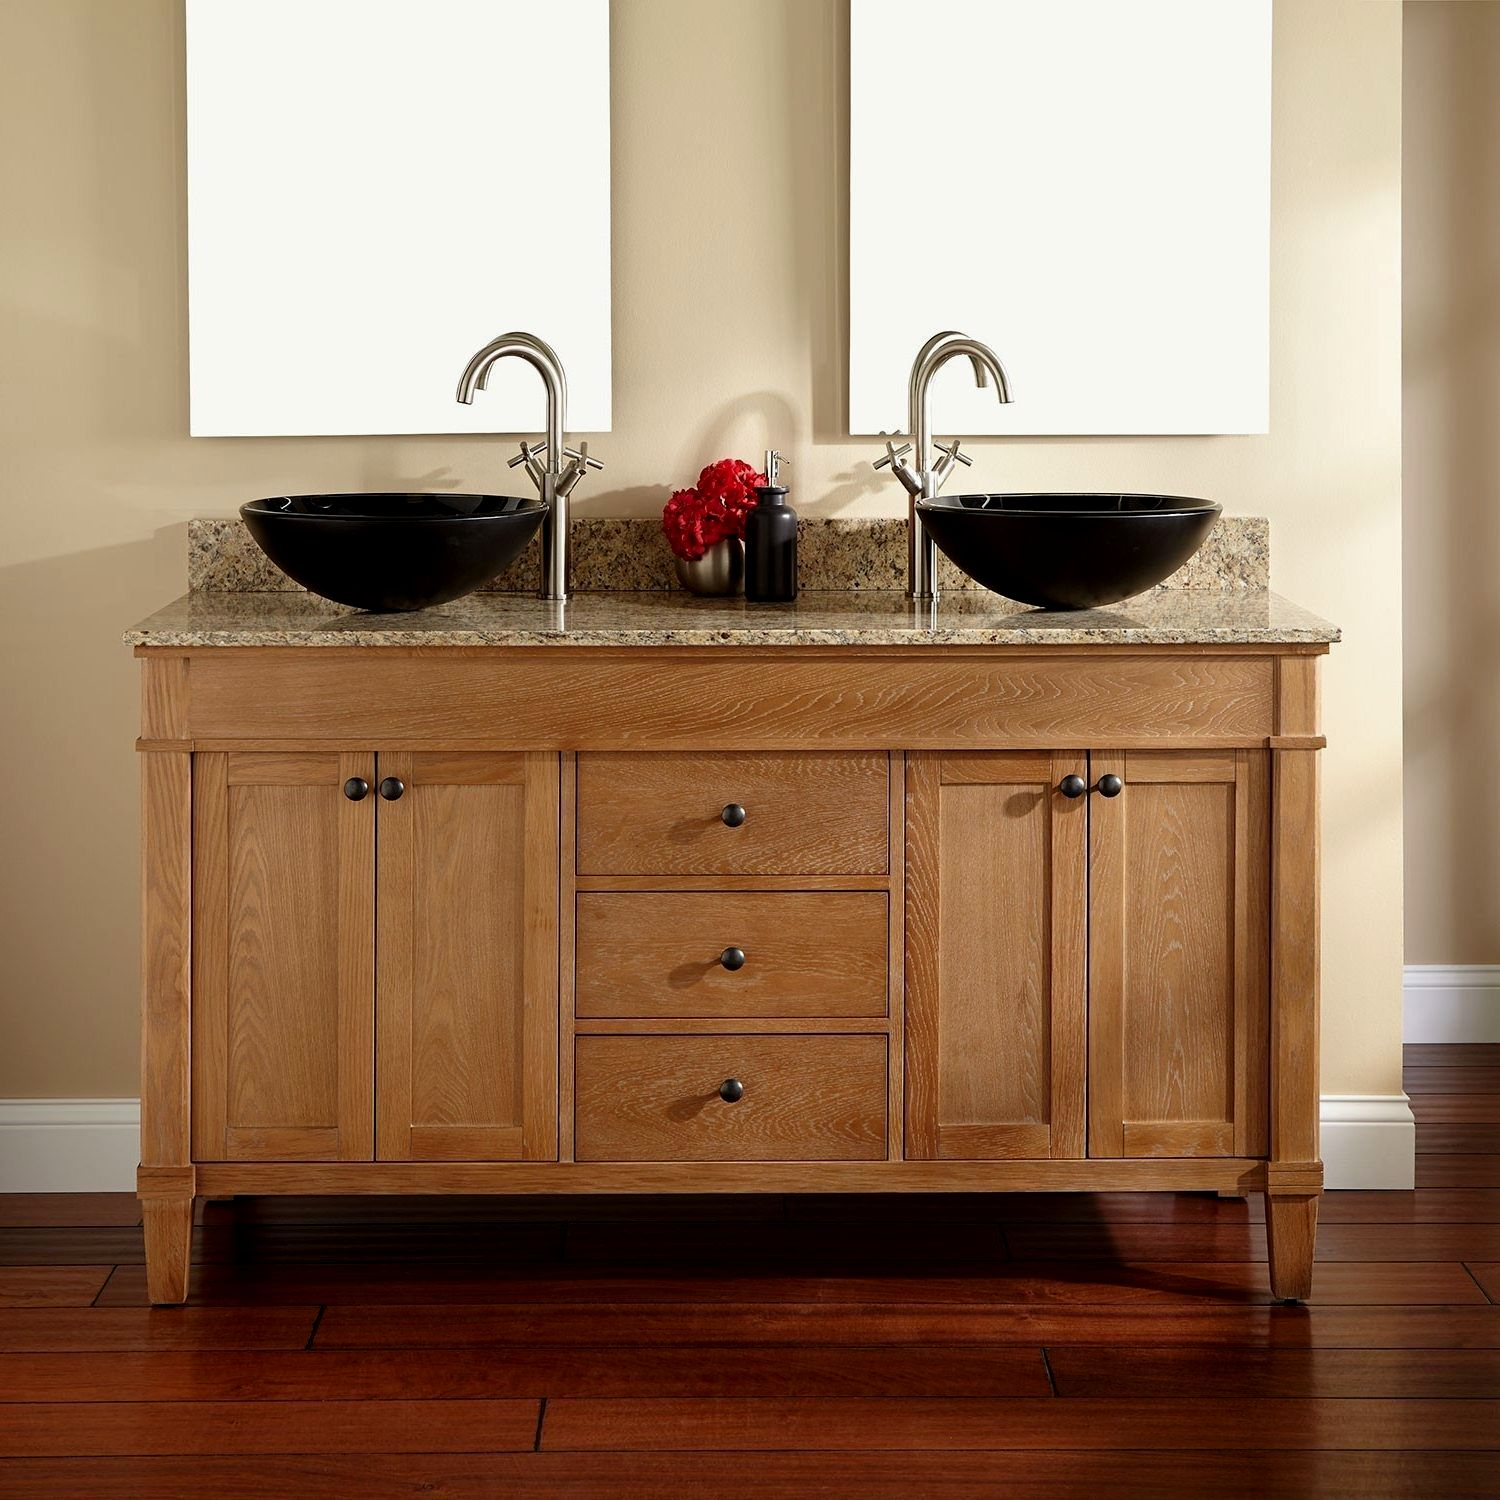 fancy bathroom cabinets home depot inspiration-Fascinating Bathroom Cabinets Home Depot Image